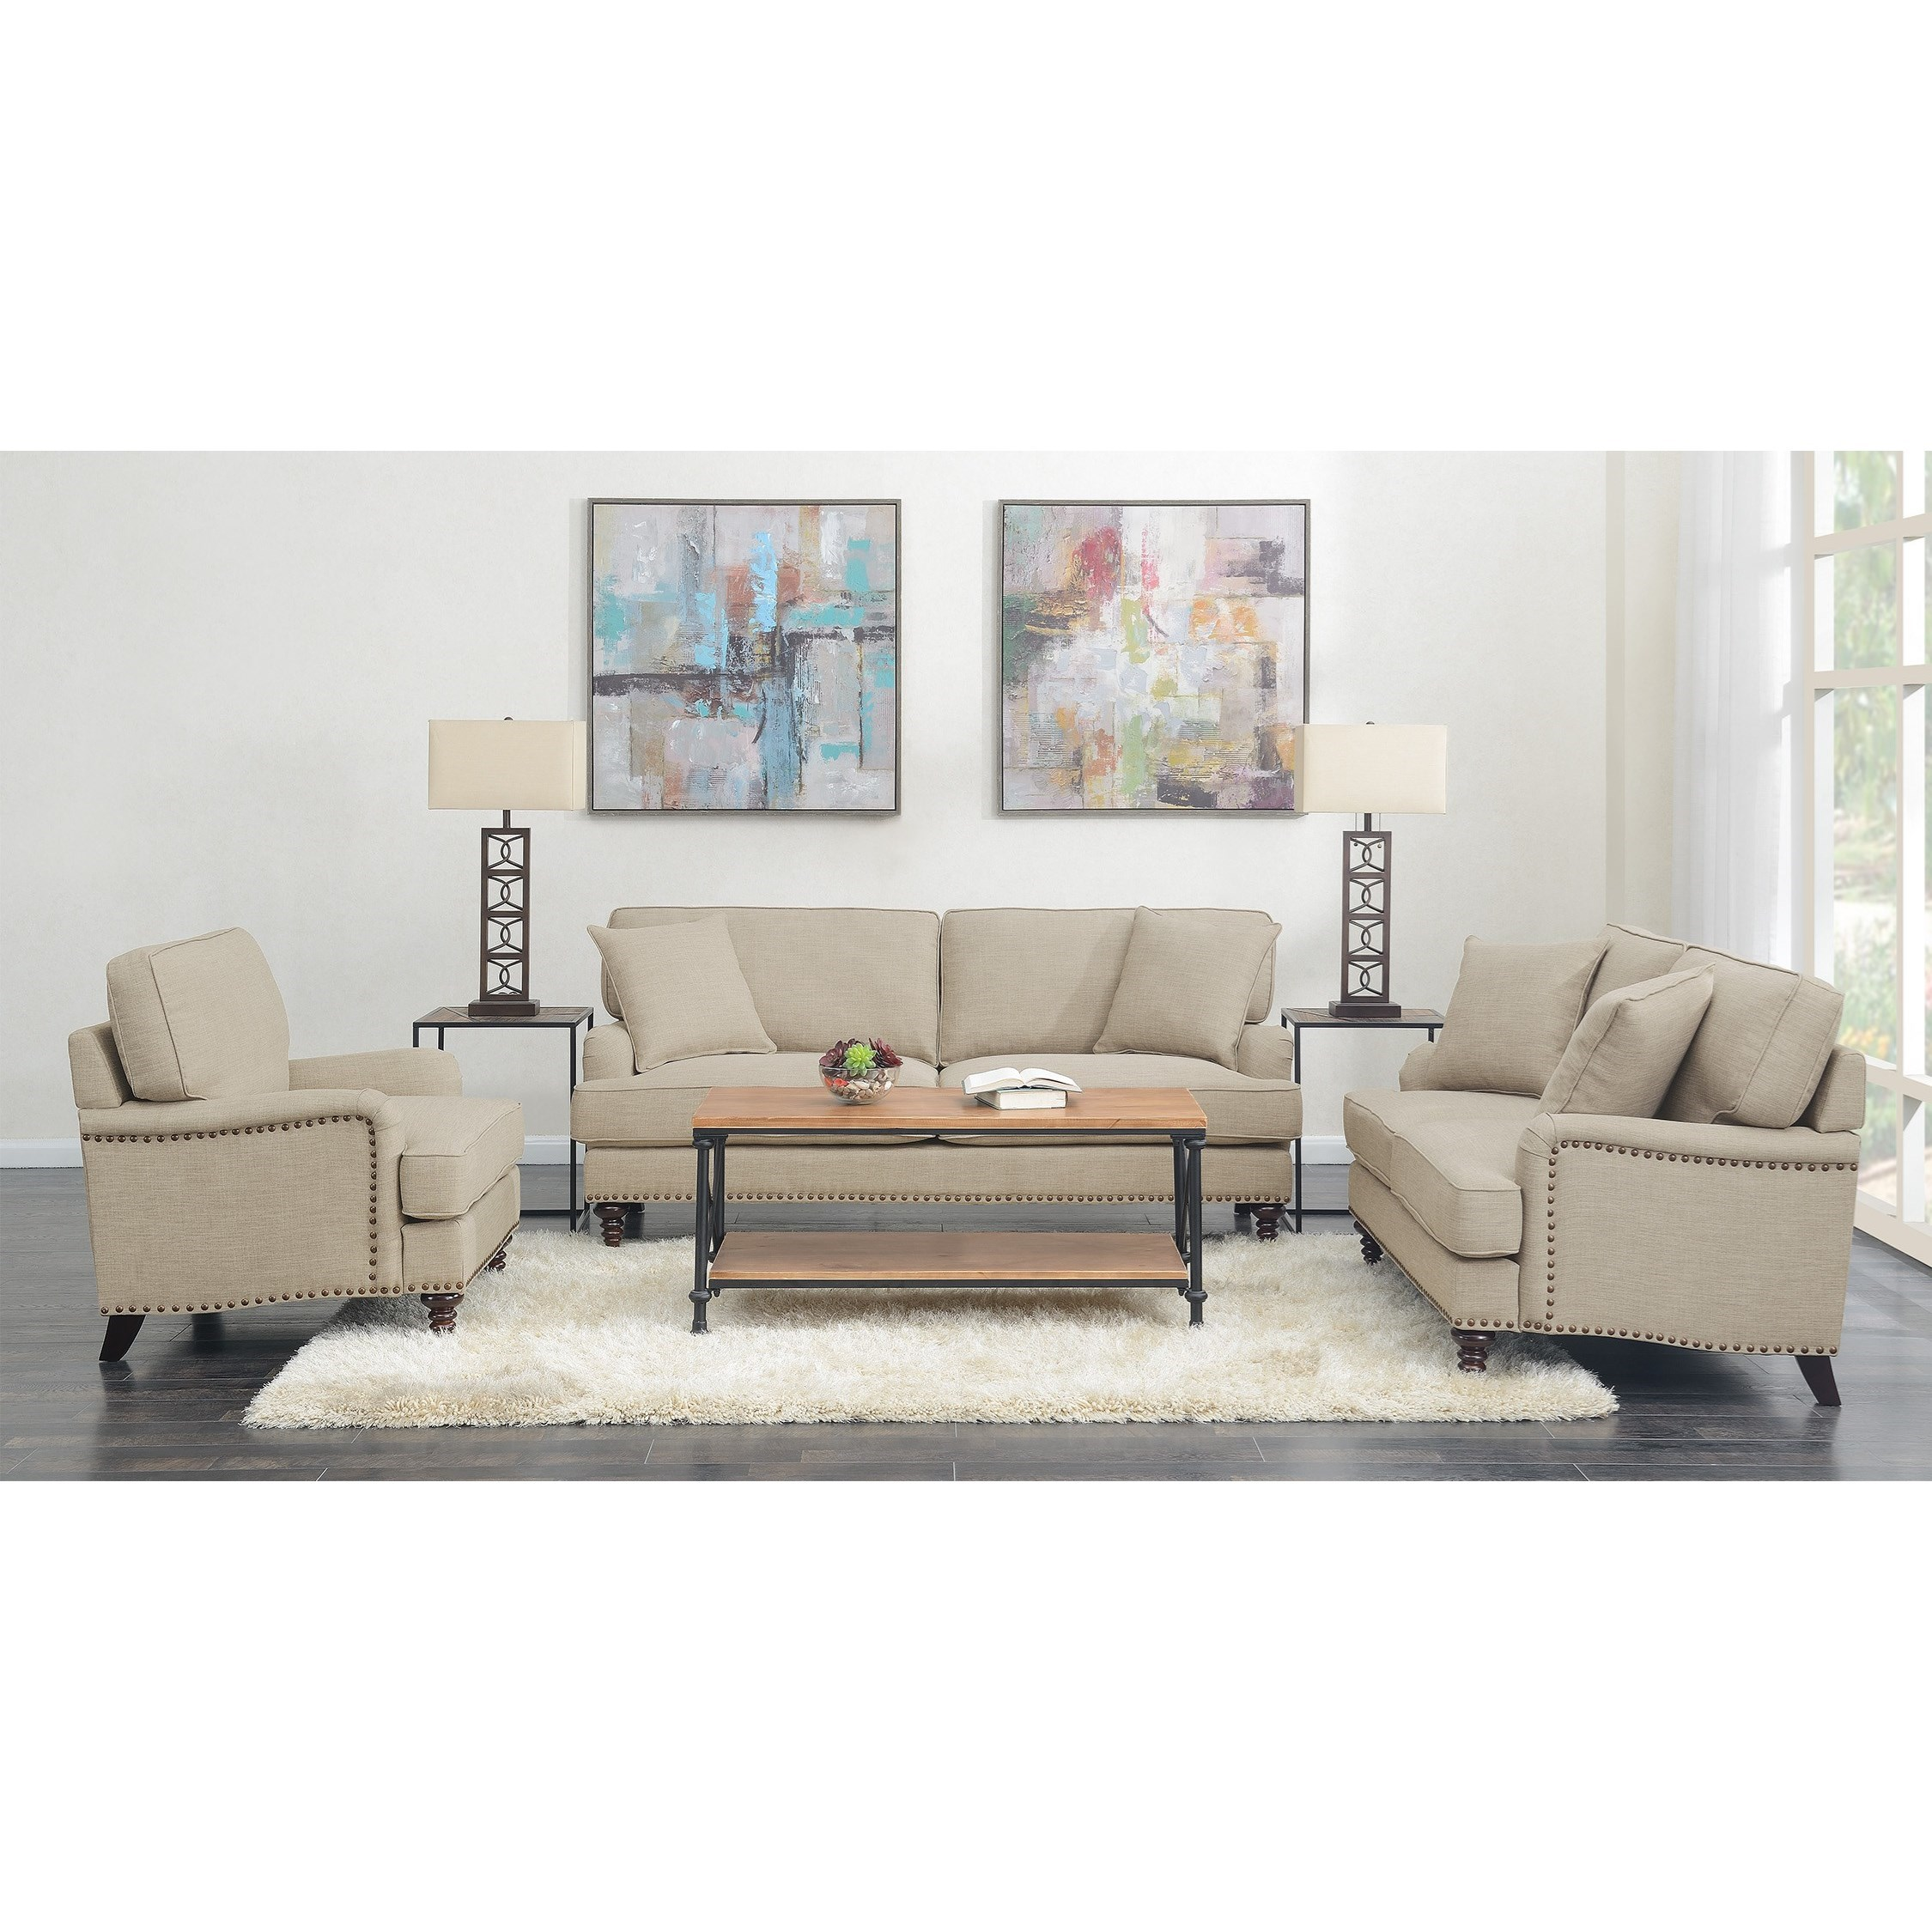 Abby 3PC Set-Sofa, Loveseat & Chair at Dream Home Interiors